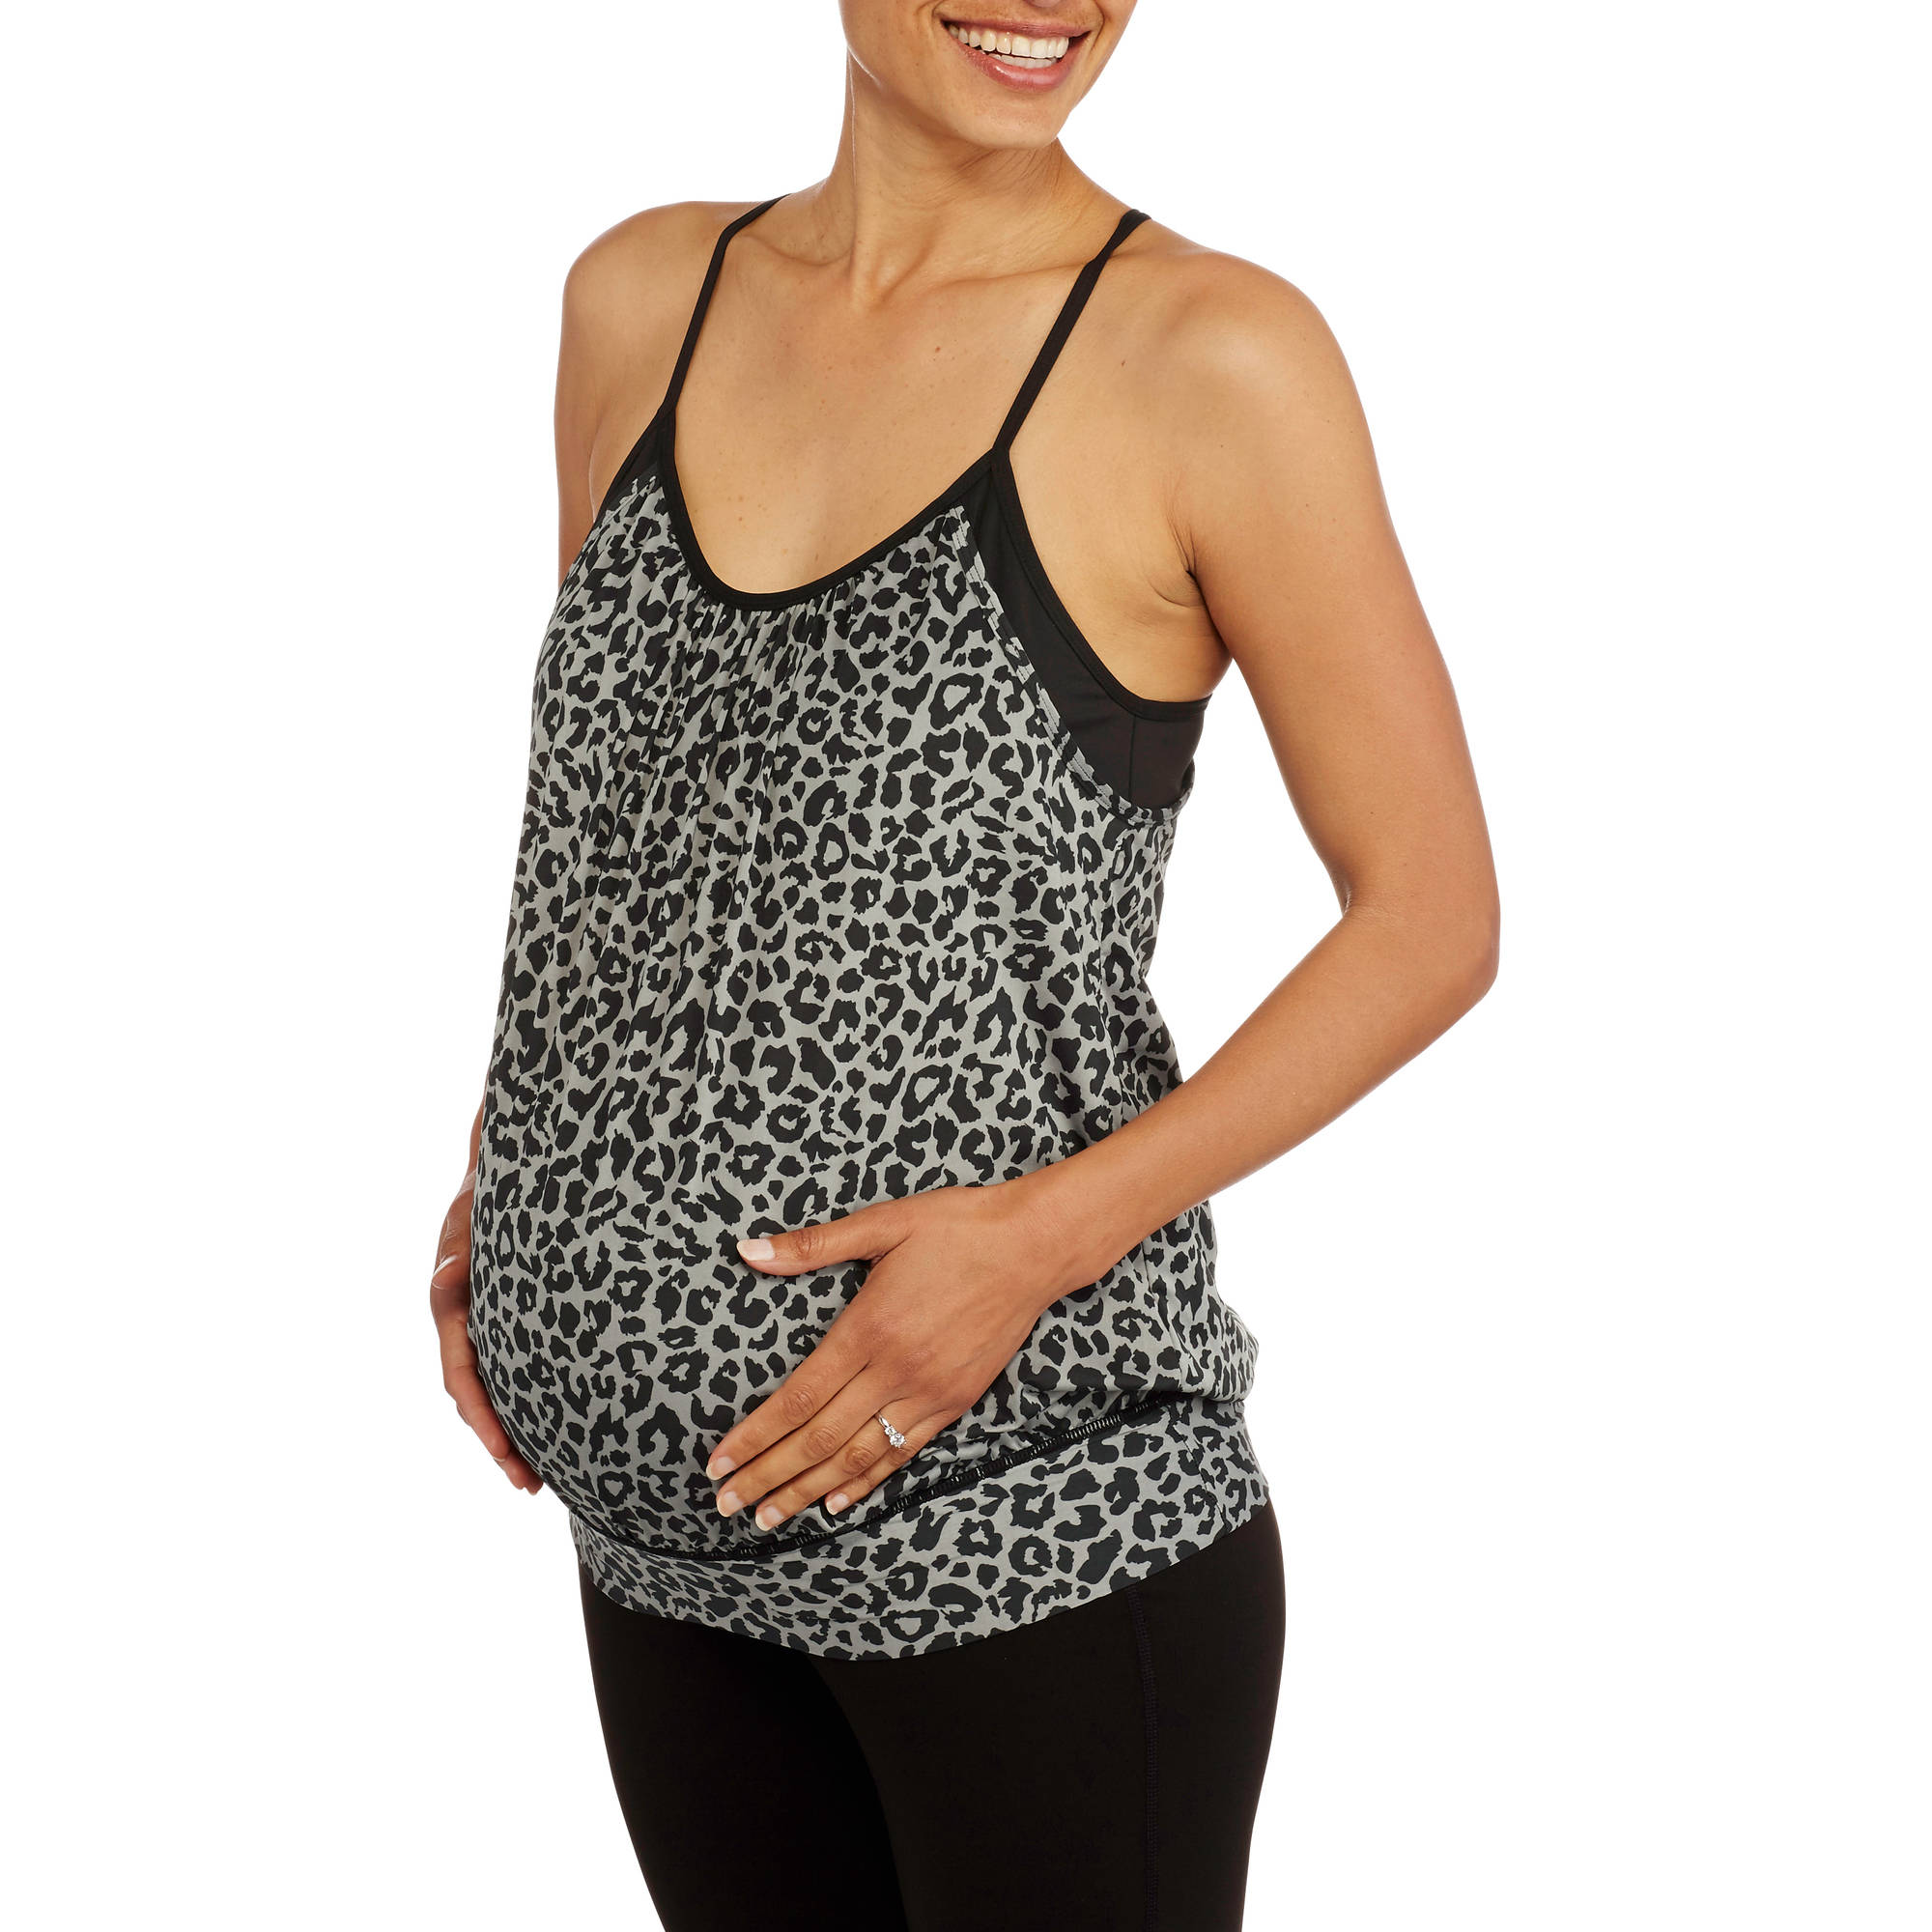 Nurture by Lamaze Maternity Printed Racerback Workout Tank with Built-in-Bra